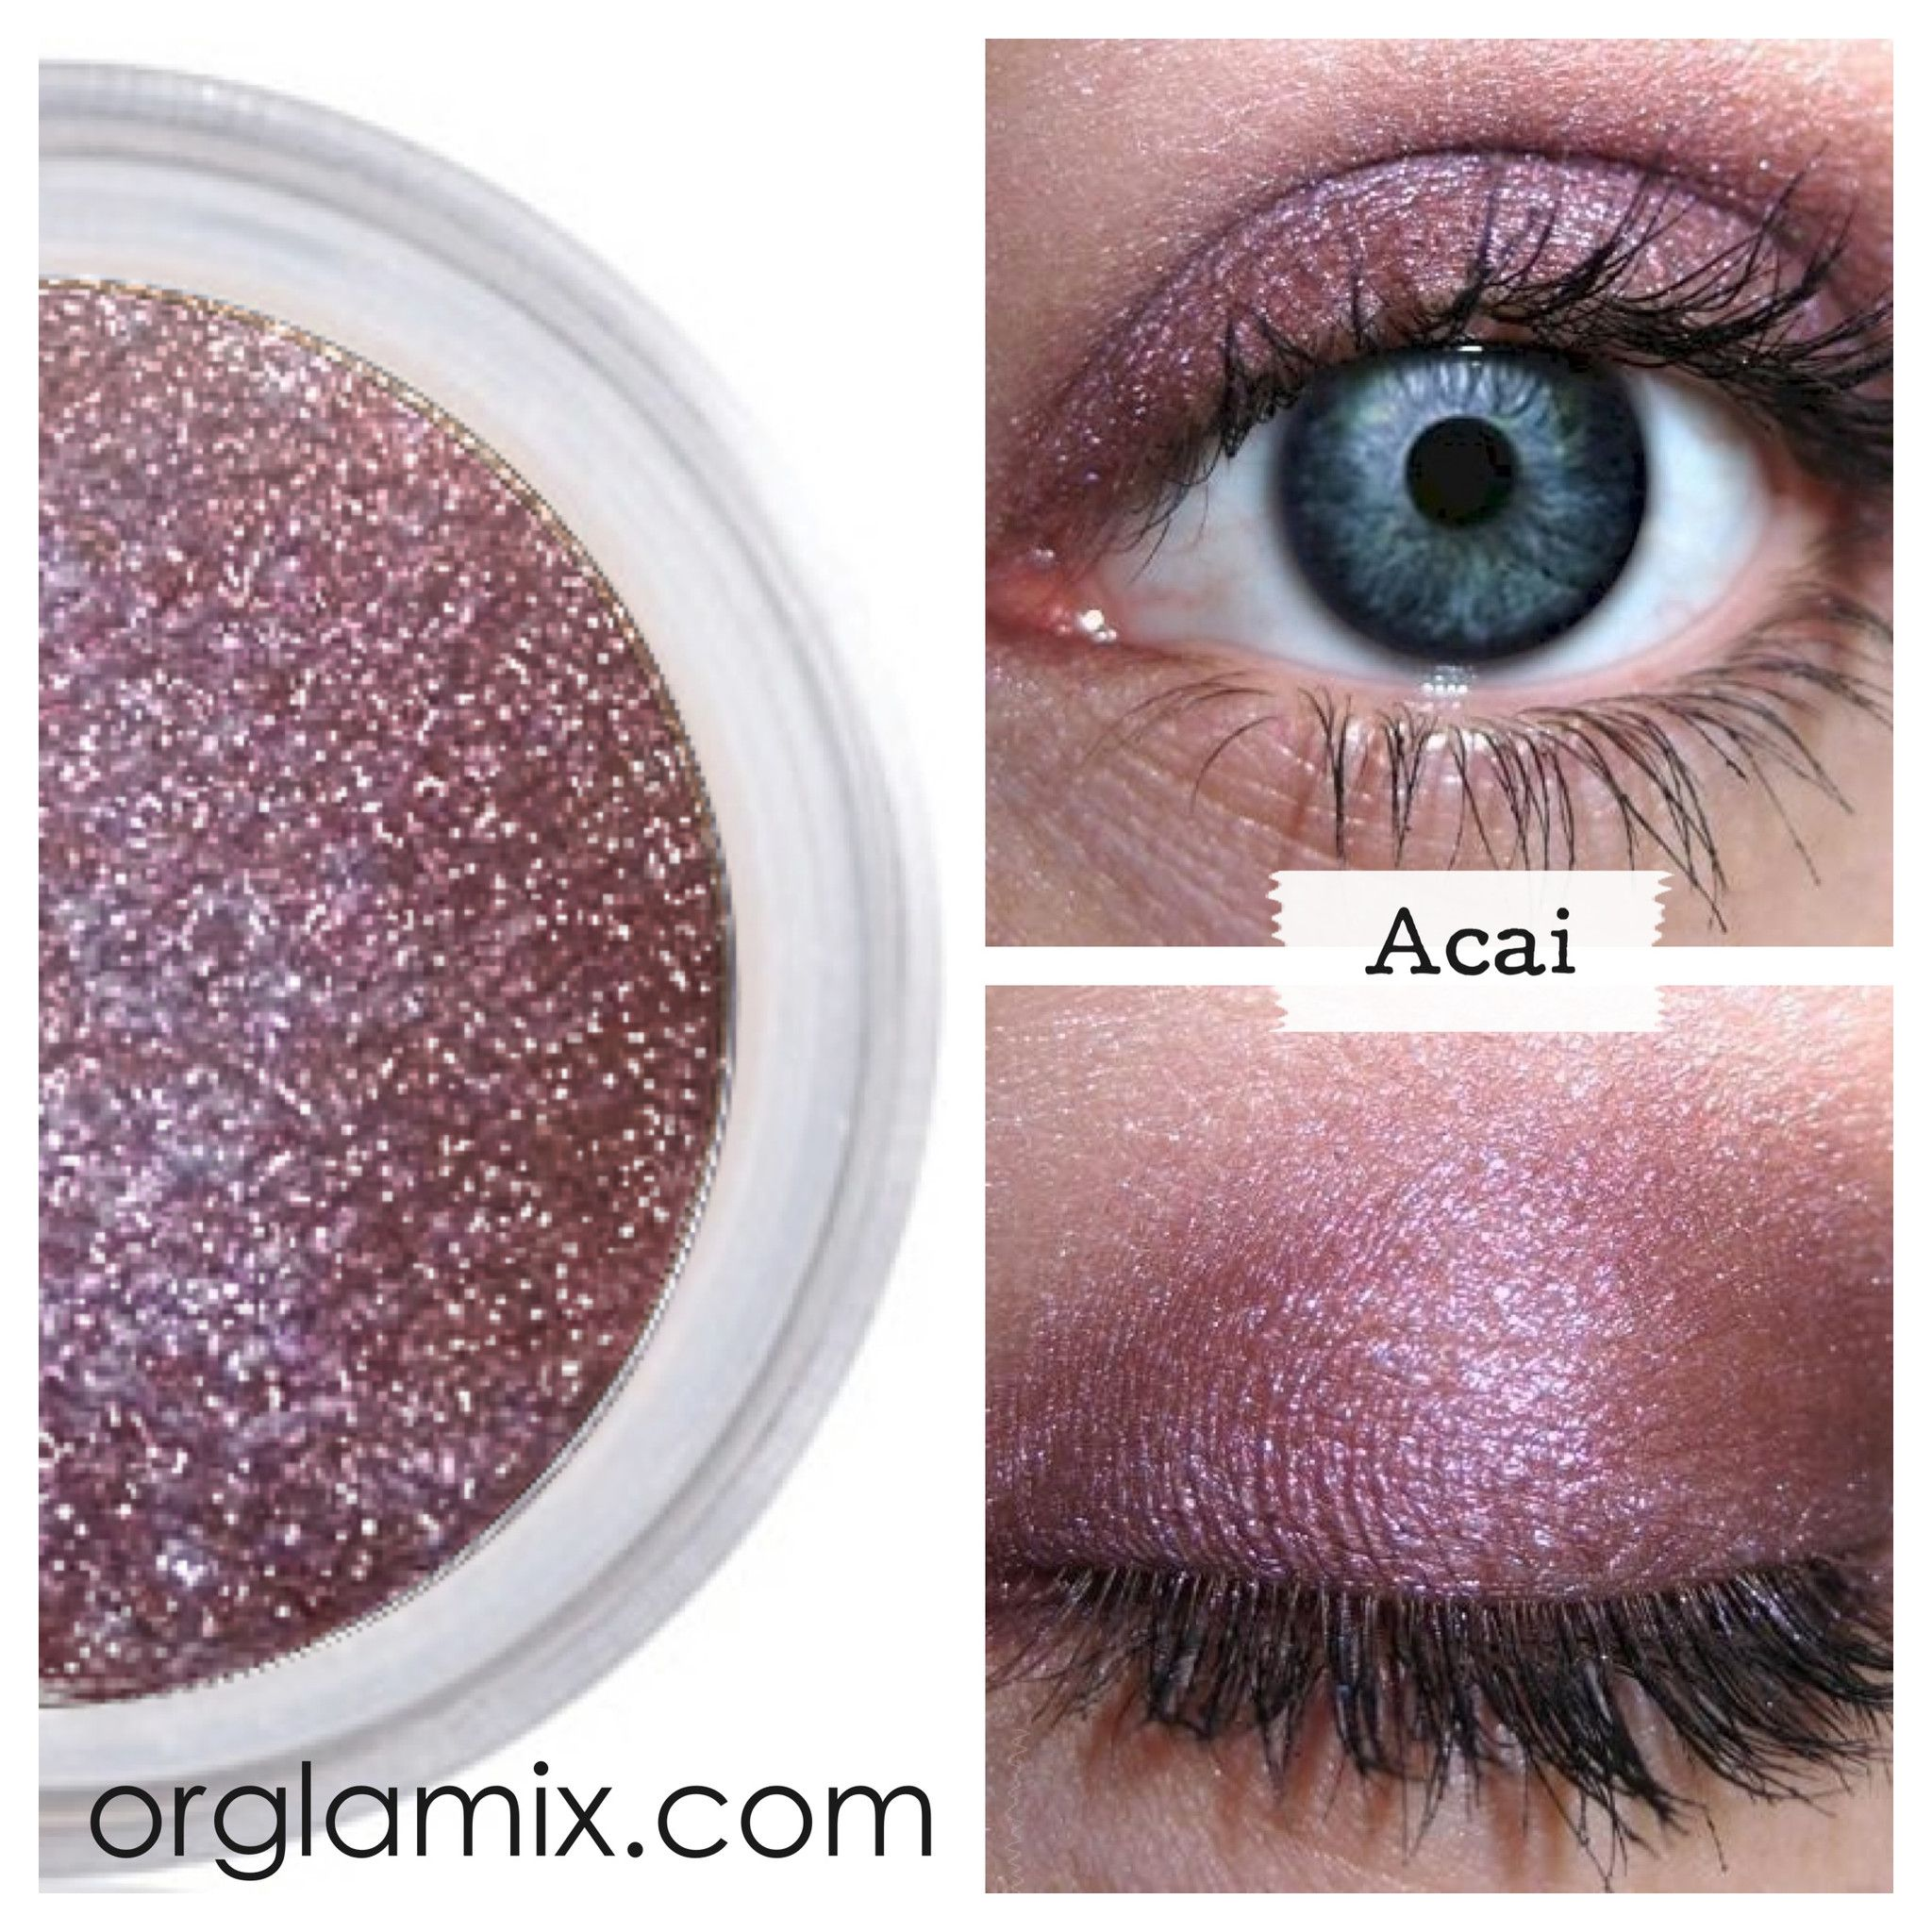 Star In La Place, United States Purchased A Acai Eyeshadow